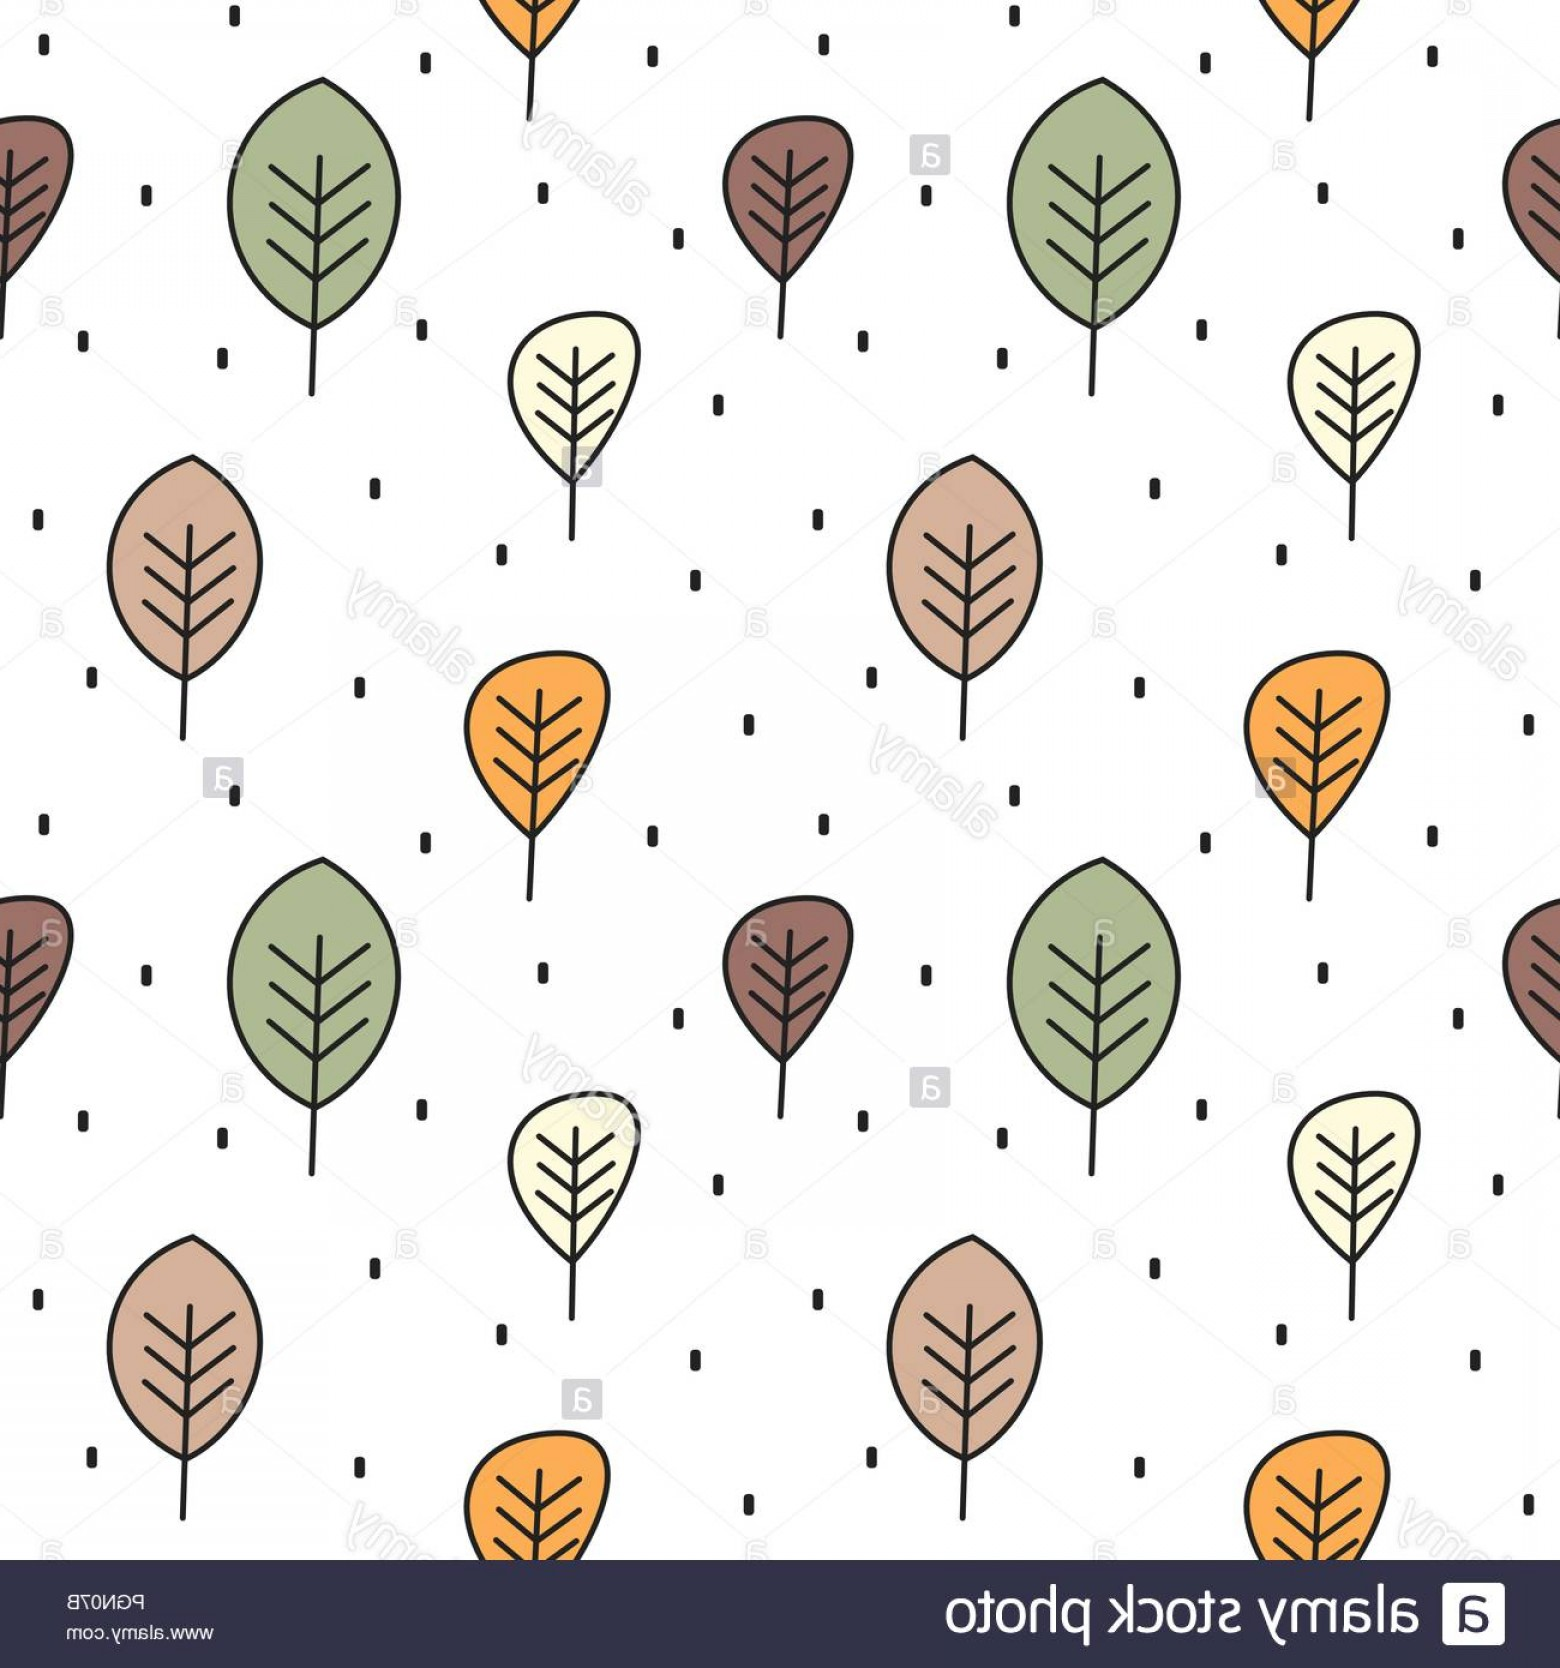 Autumn Seamless Vector: Cute Autumn Seamless Vector Pattern Background Illustration With Leaves Image